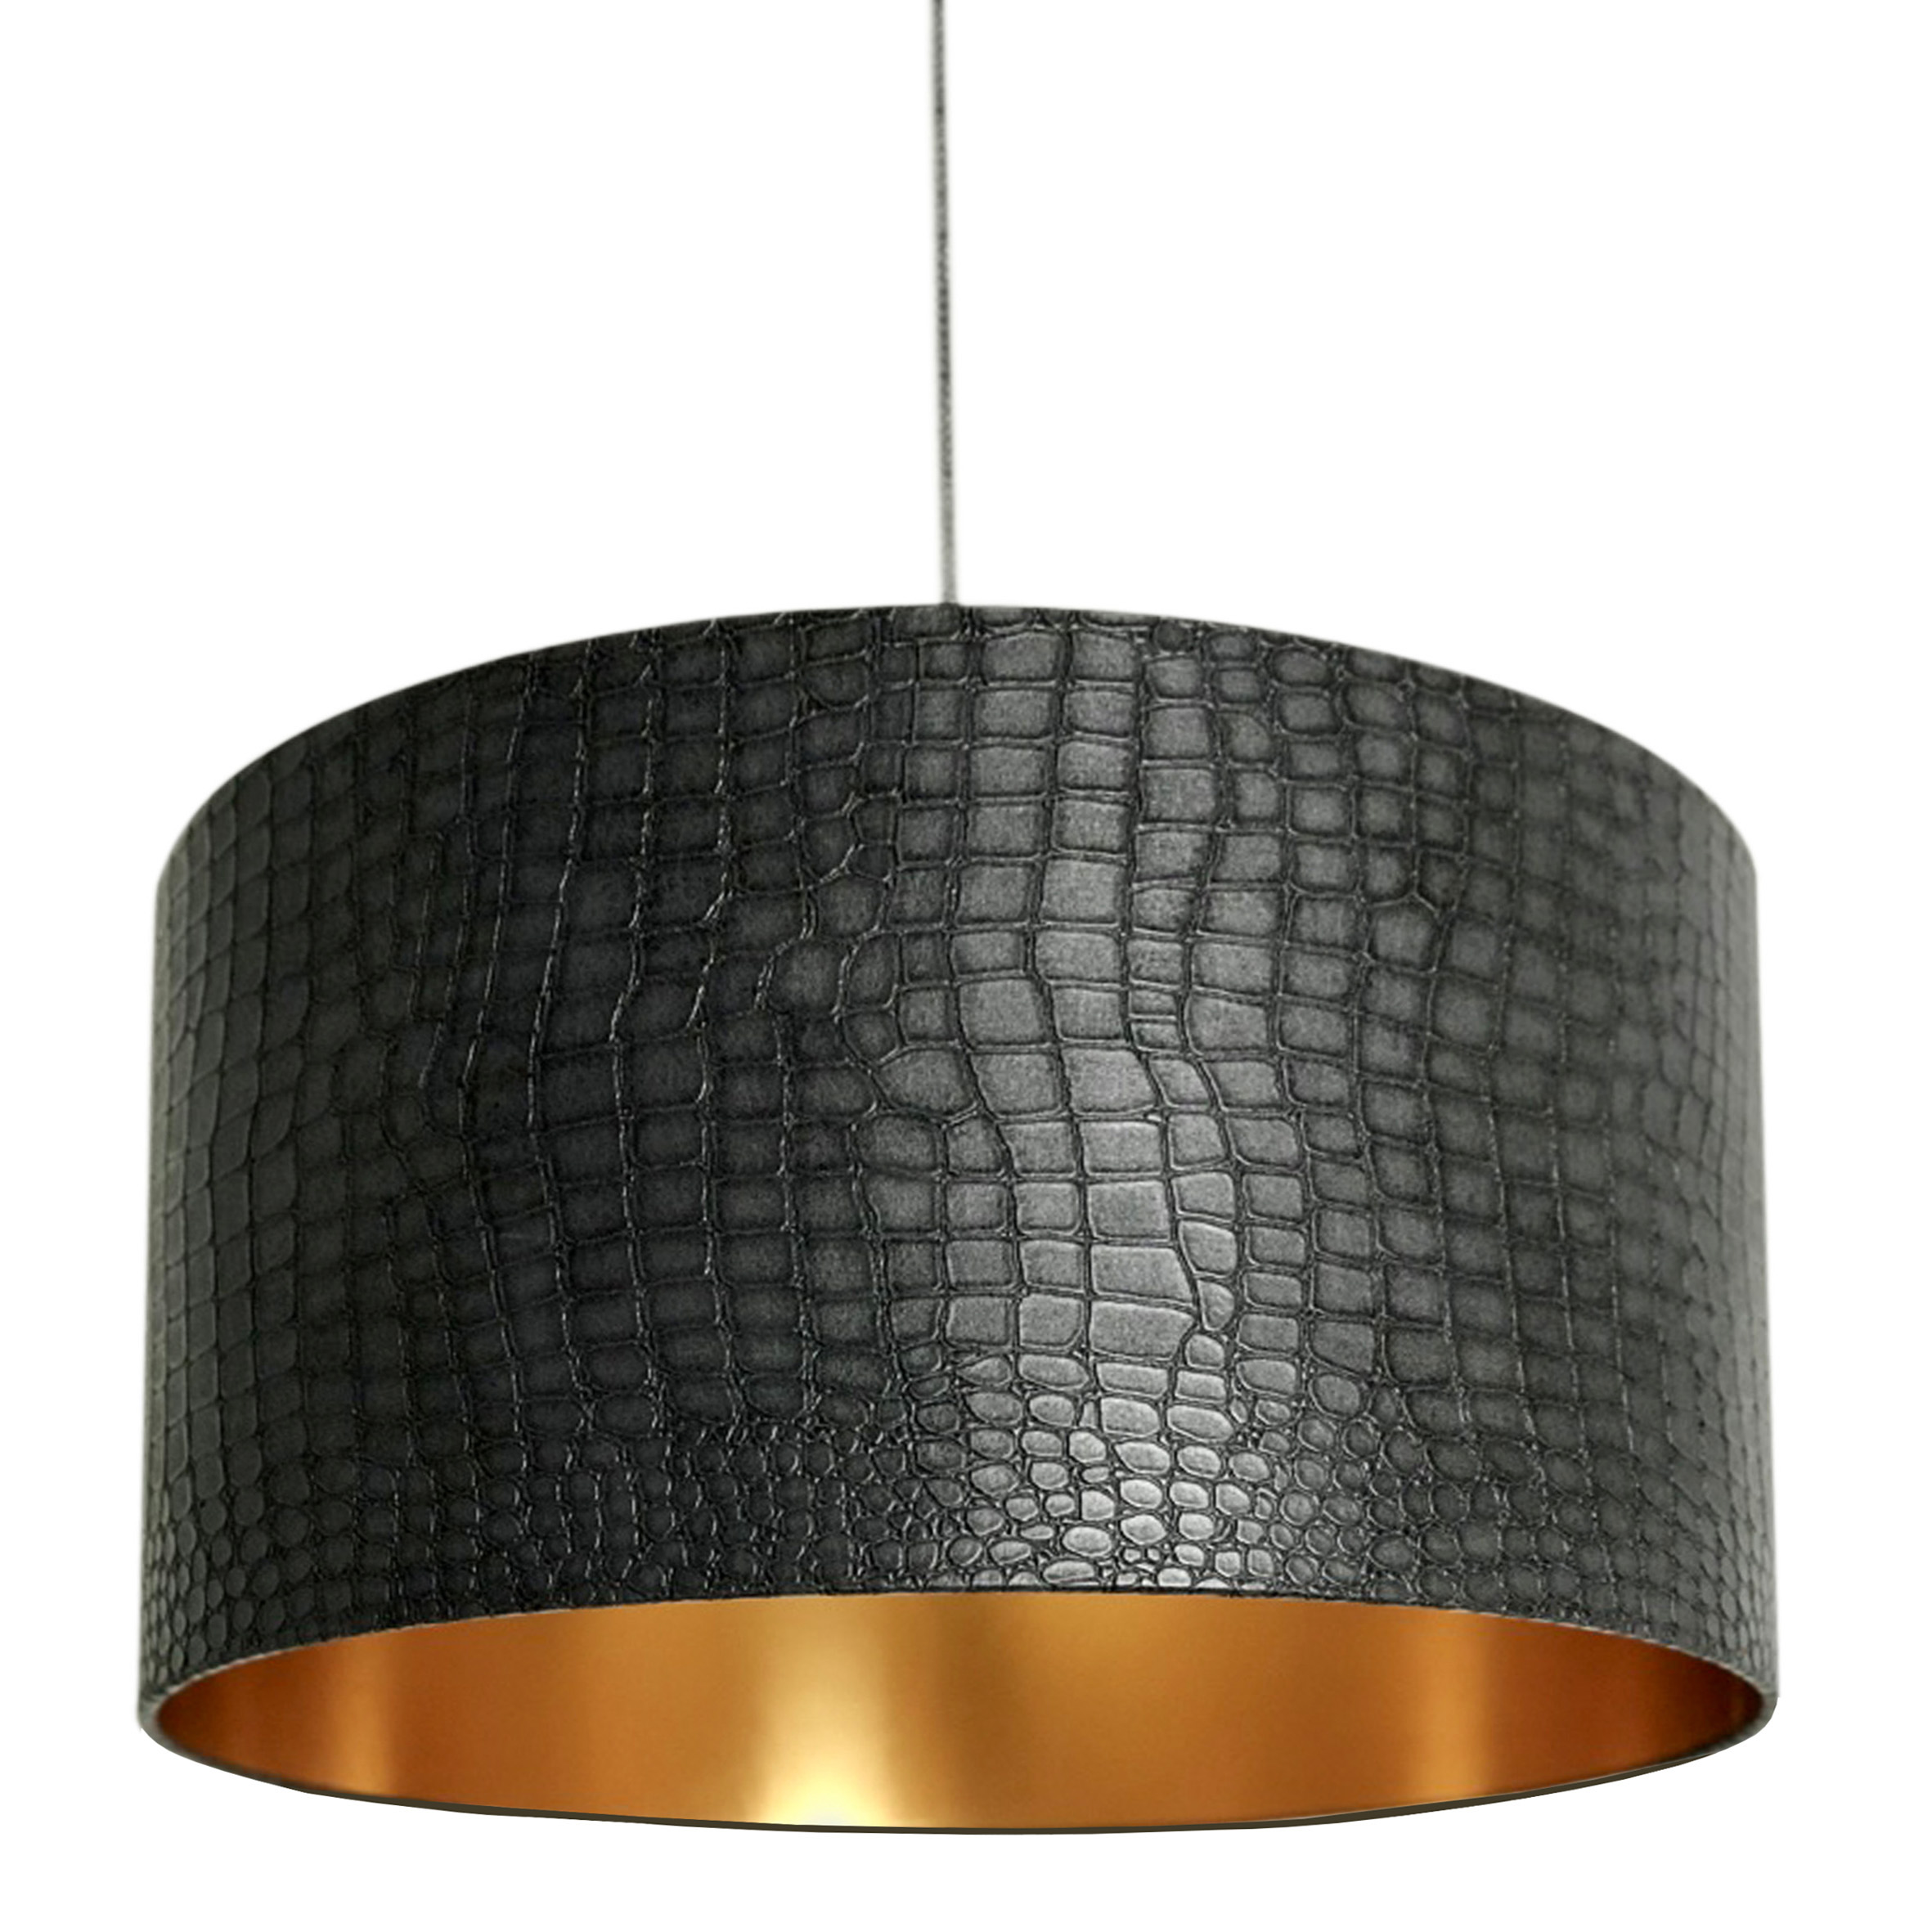 Mock Croc Print Lampshade With Ambient Gold Lining Handmade To Order